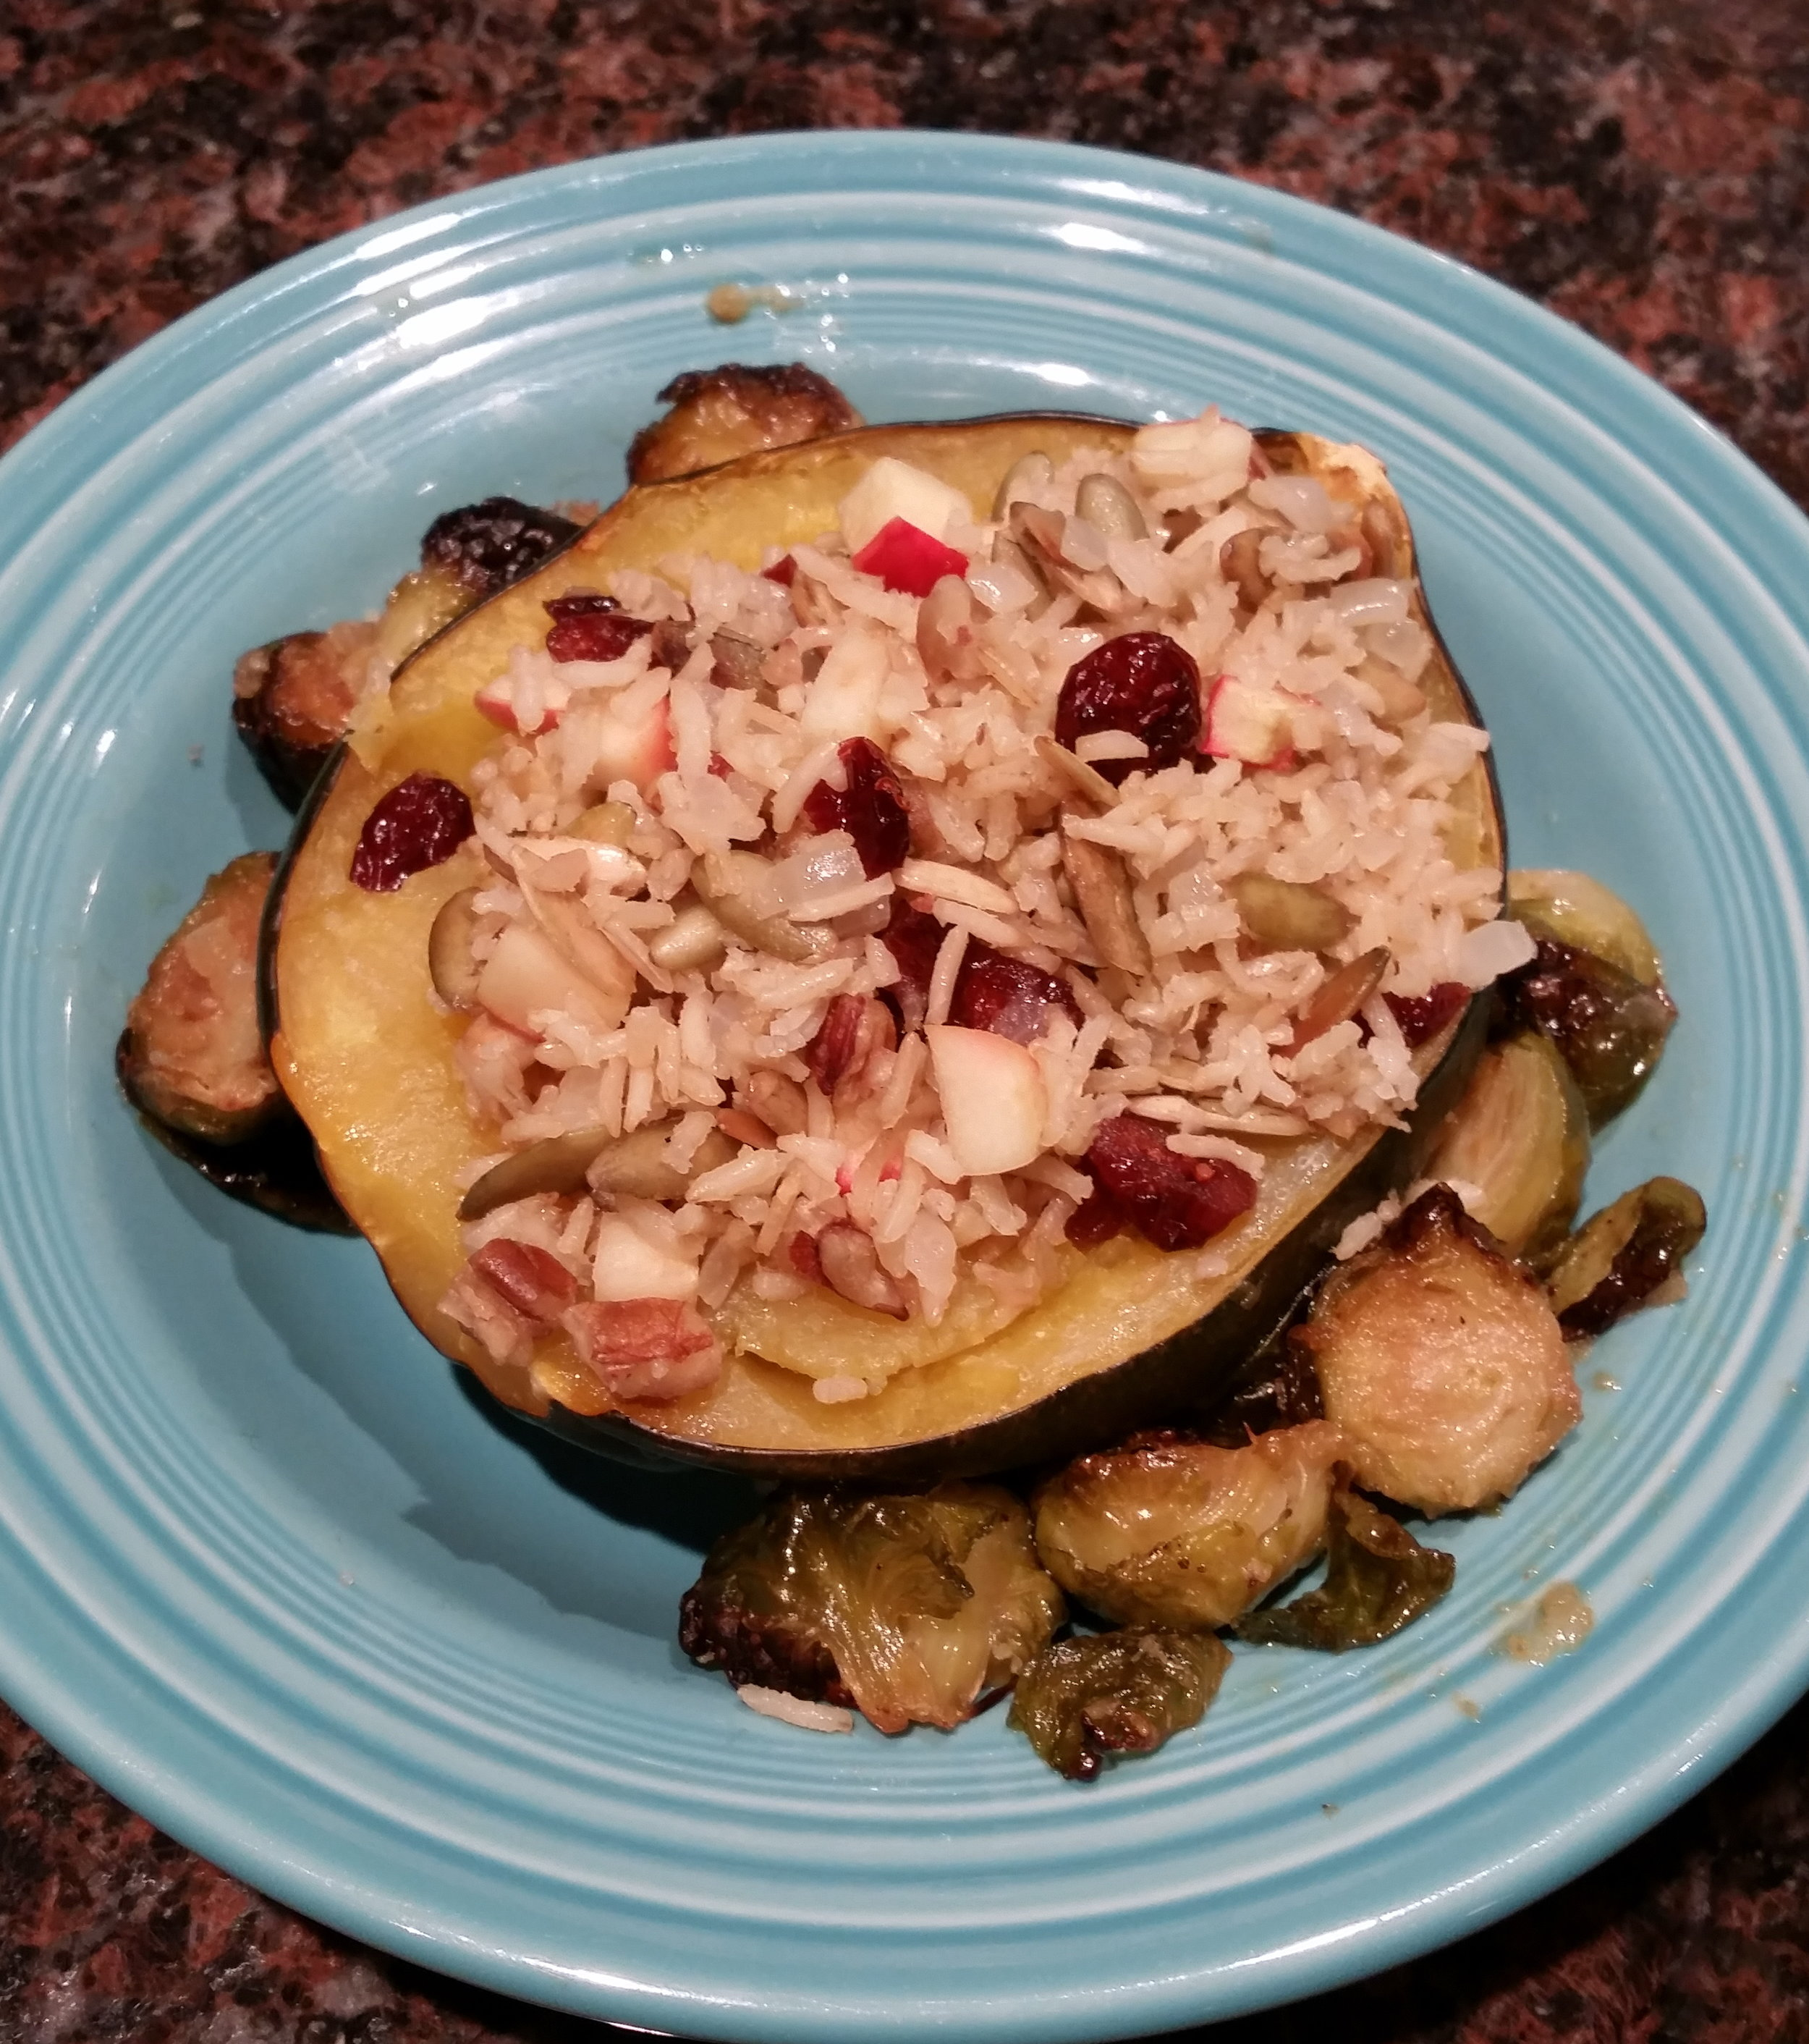 Acorn squash baked with maple syrup and stuffed with brown rice, pumpkin seeds, pecans, apples, cranberries and served with a side of garlic-broiled brussels sprouts. I mean… dang. V/GF